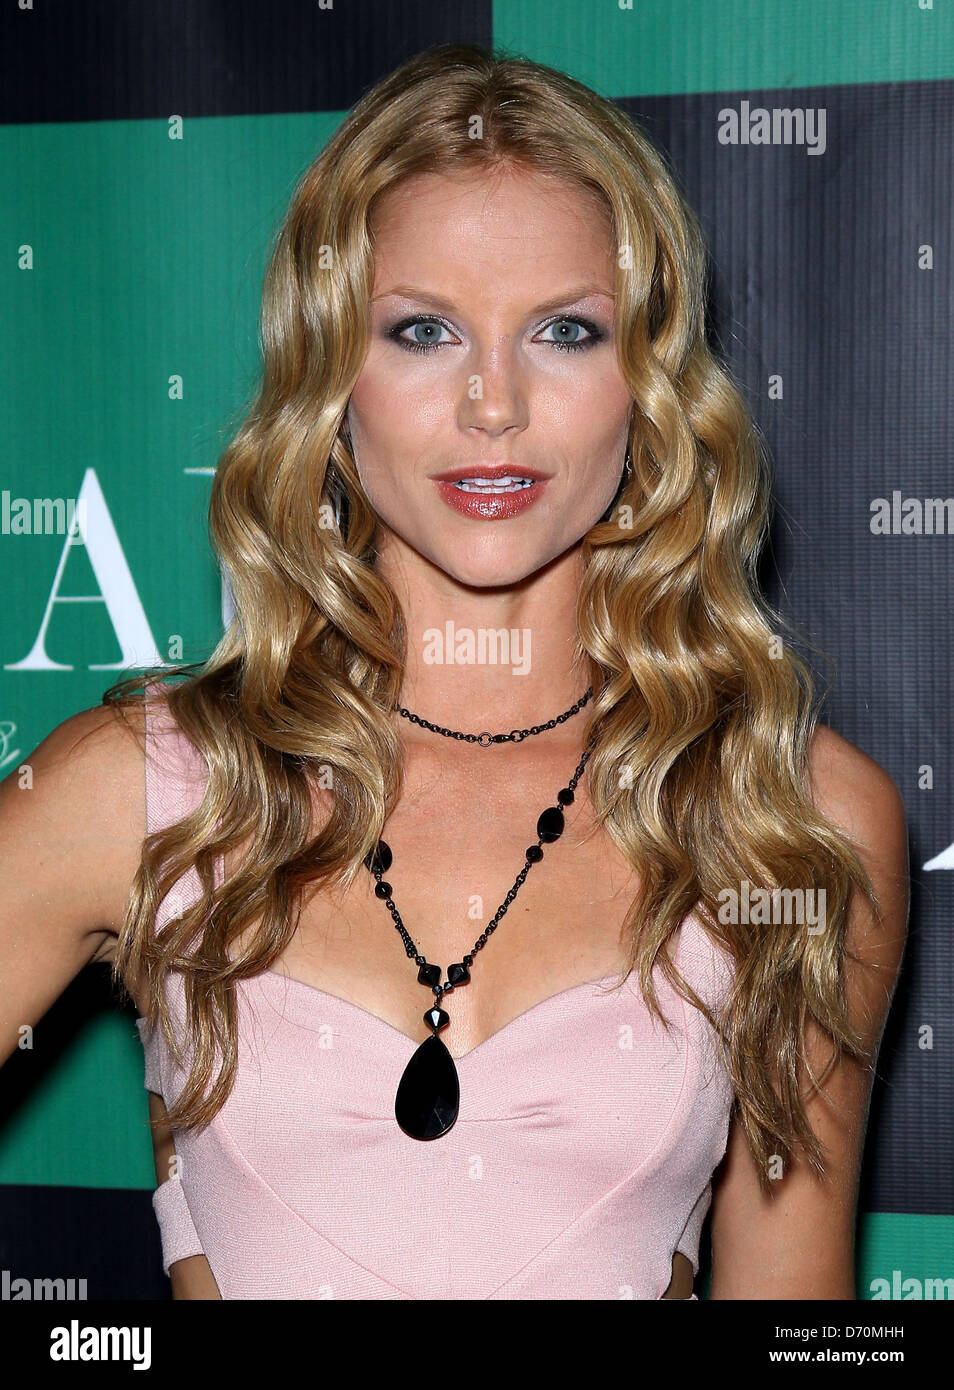 ellen hollman spartacus stock photos amp ellen hollman